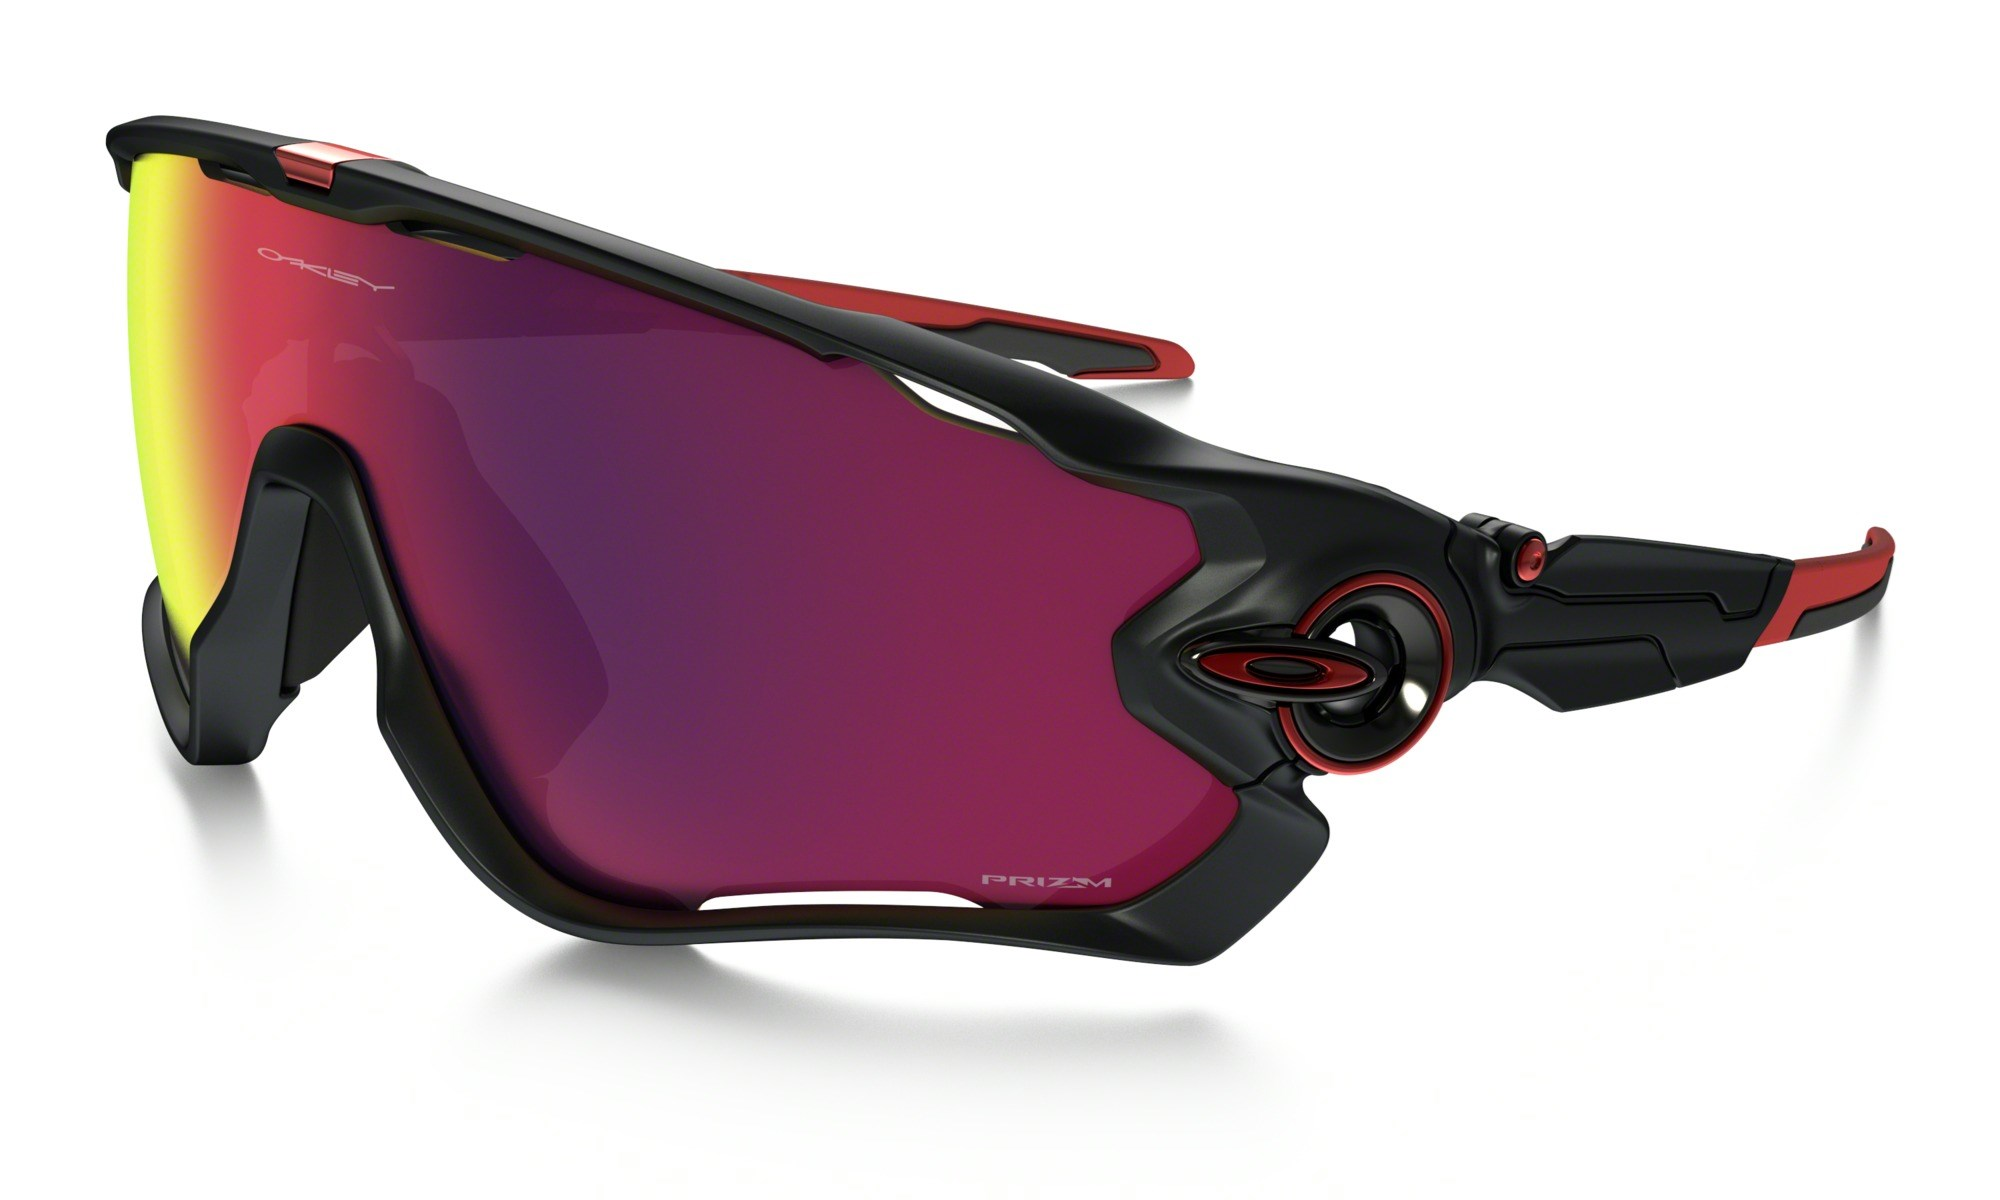 b2d8a96d9fe0 Oakley Jawbreaker Matte Black Prizm Road. 0 (Be the first to add a review!)